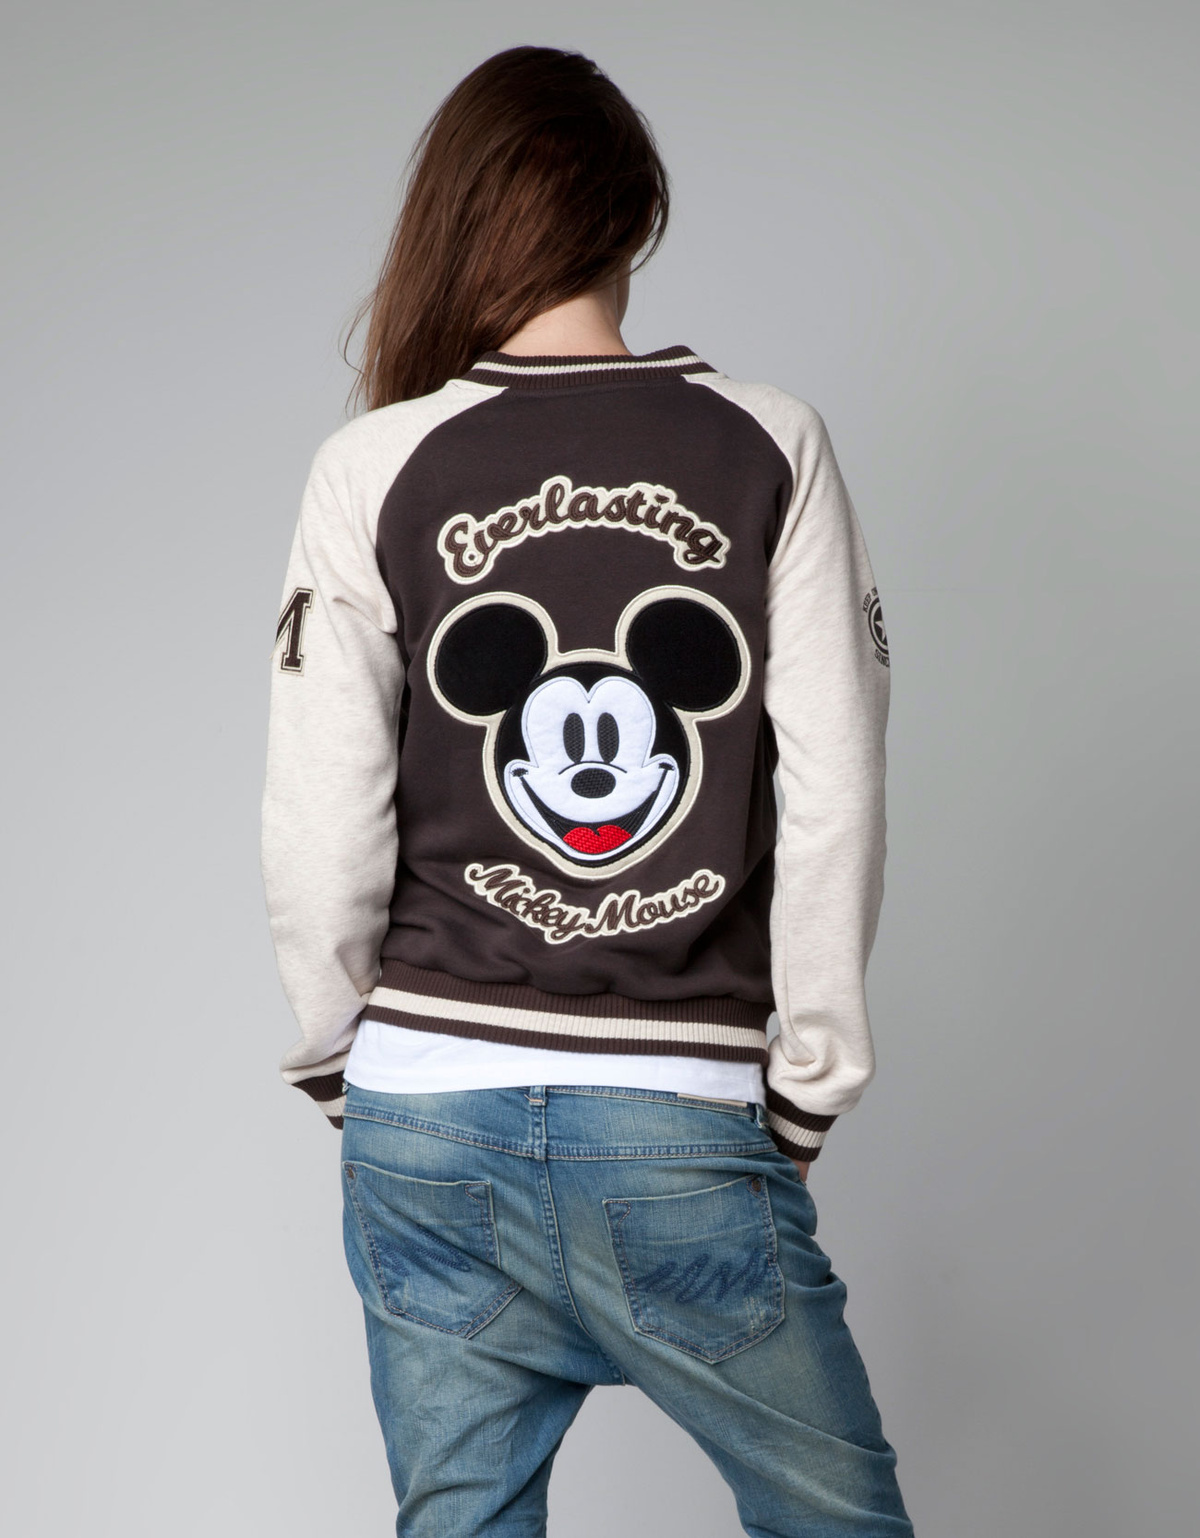 baseball jacket, bershka, fashion, jacket, mickey